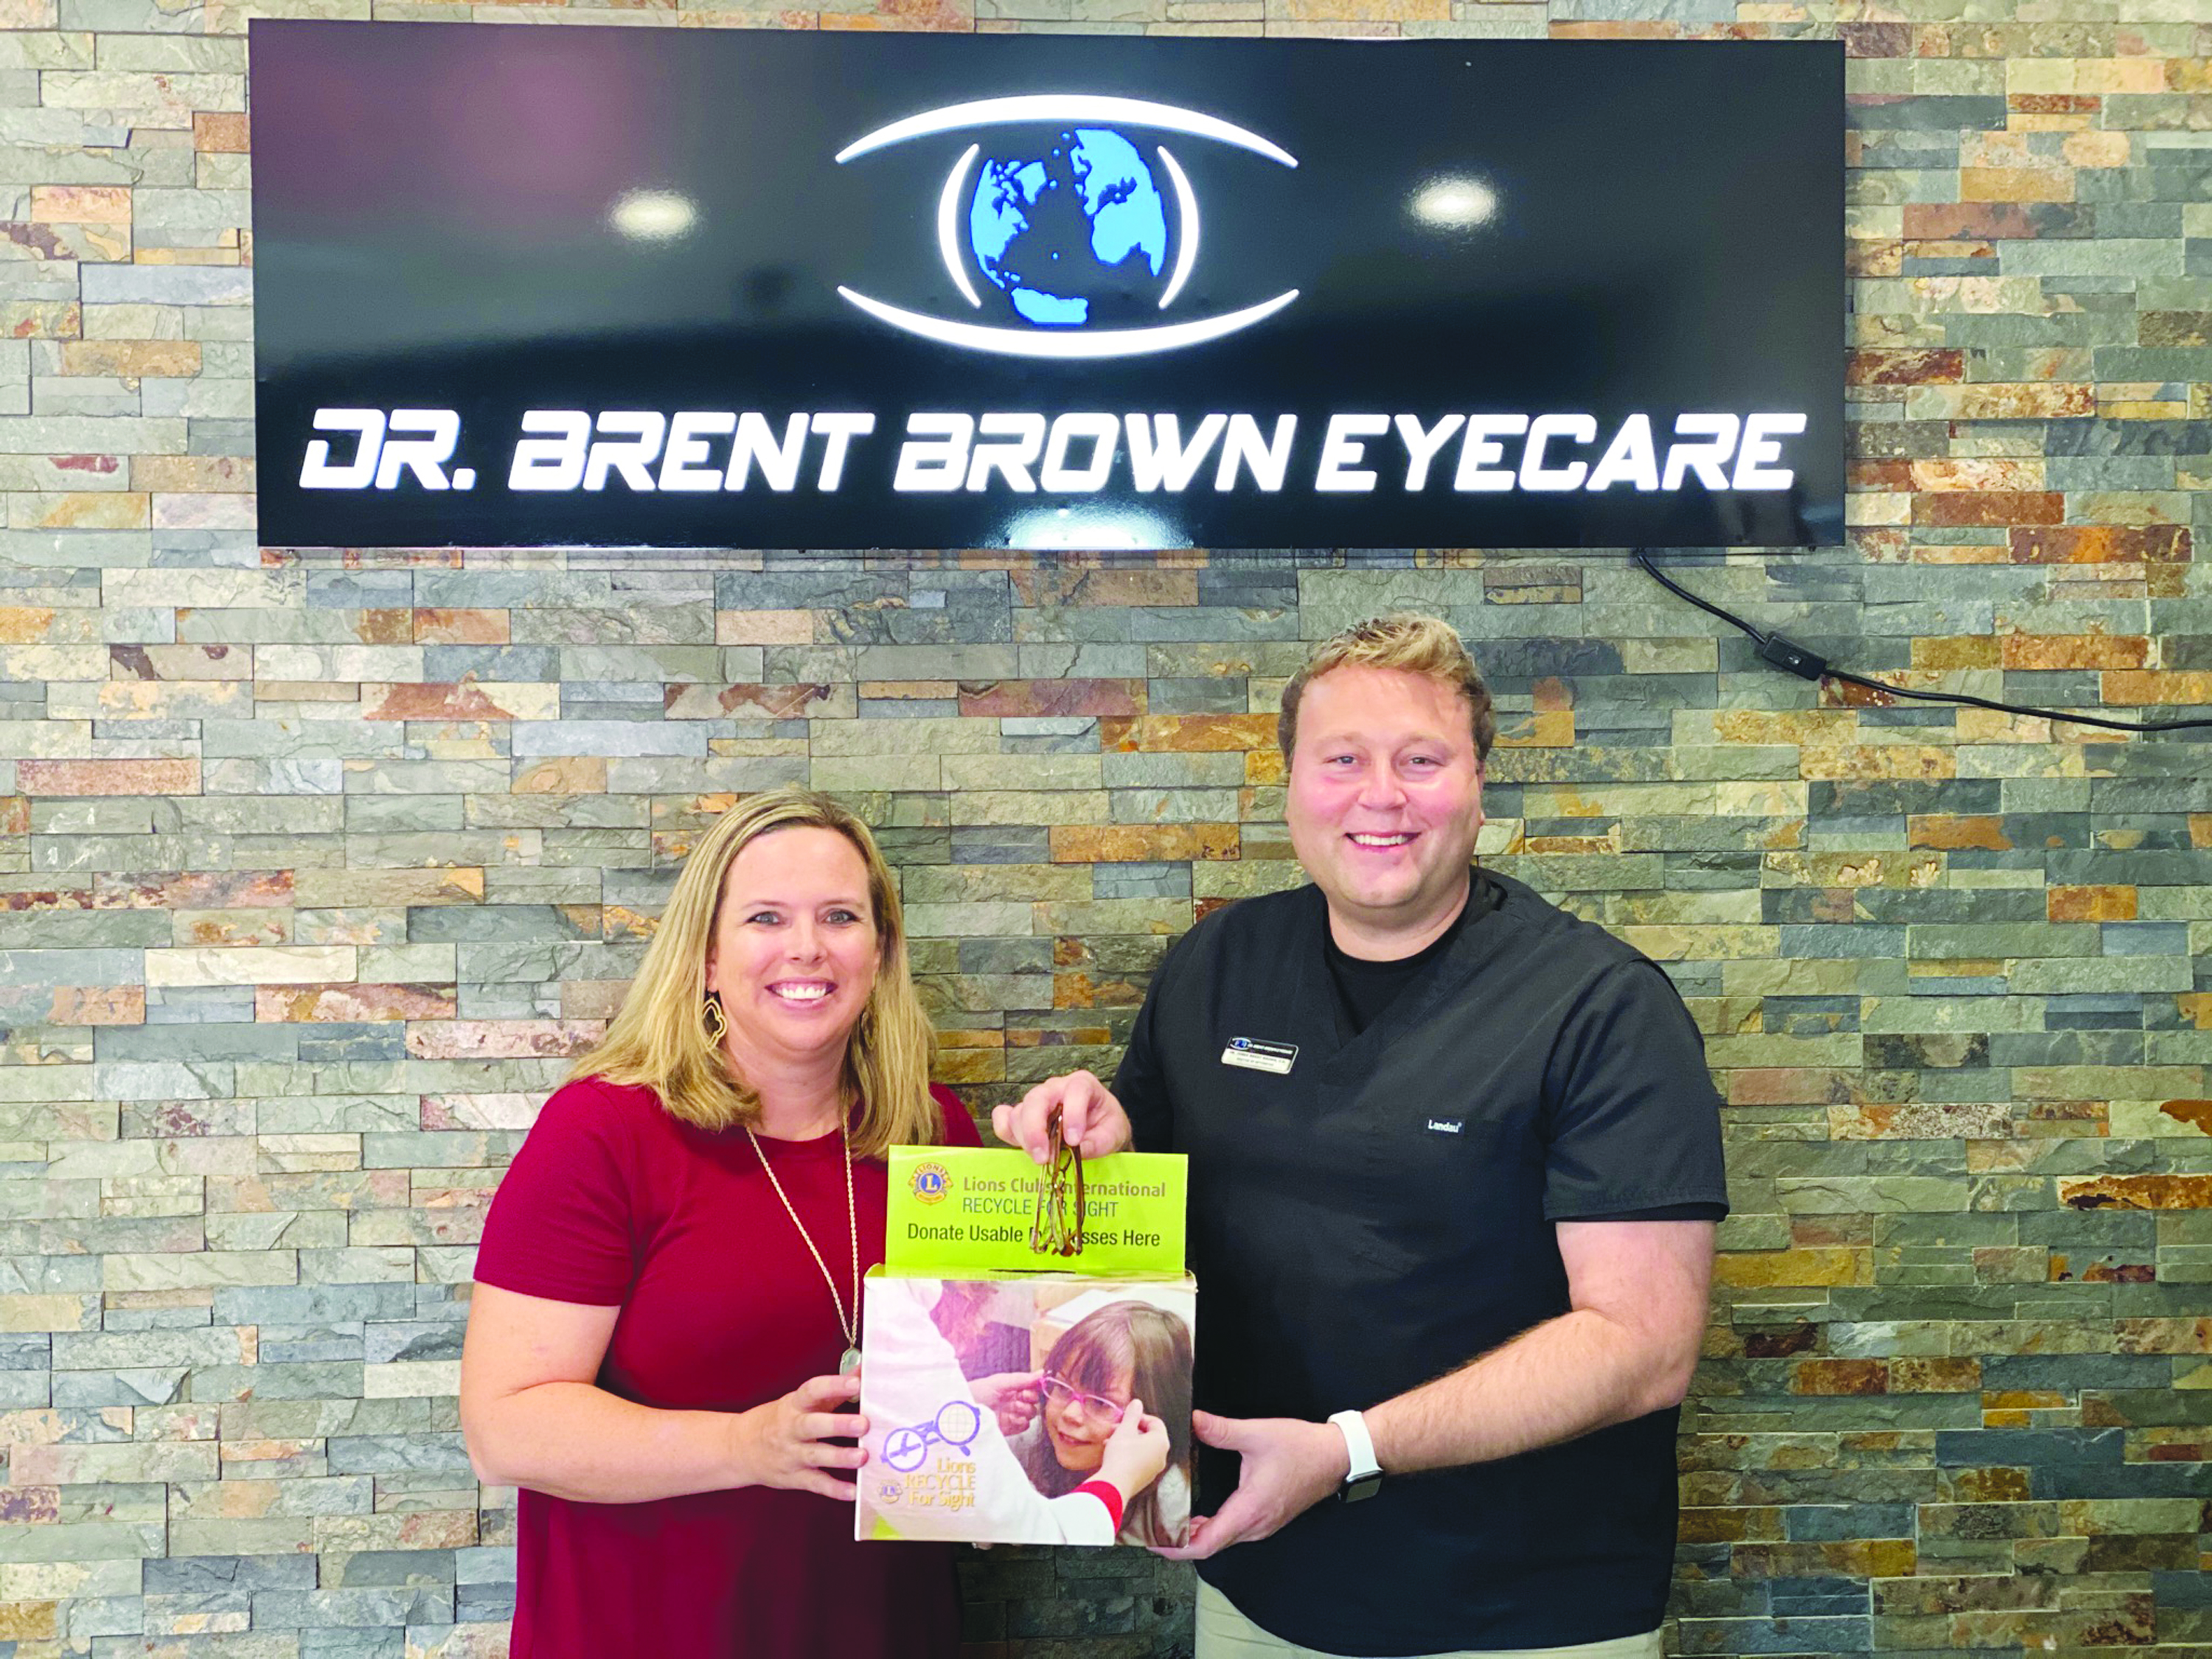 LaGrange Lions Club Hosts Eyeglasses Recycling Event on October 8